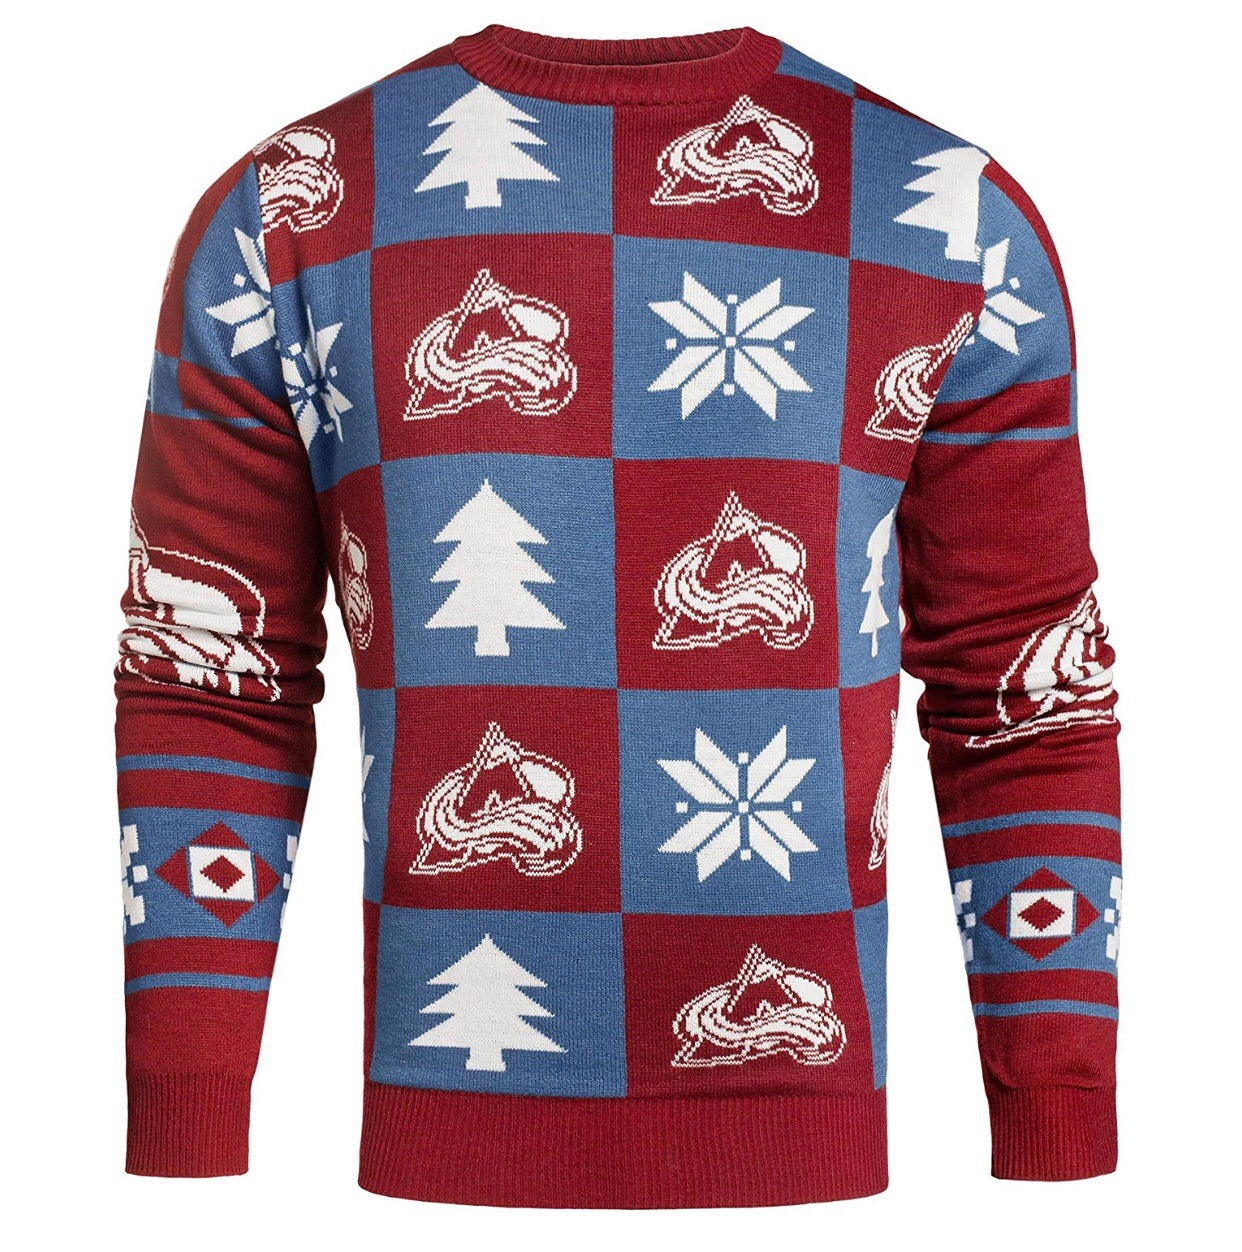 Colorado Avalanche Ugly Christmas Sweater